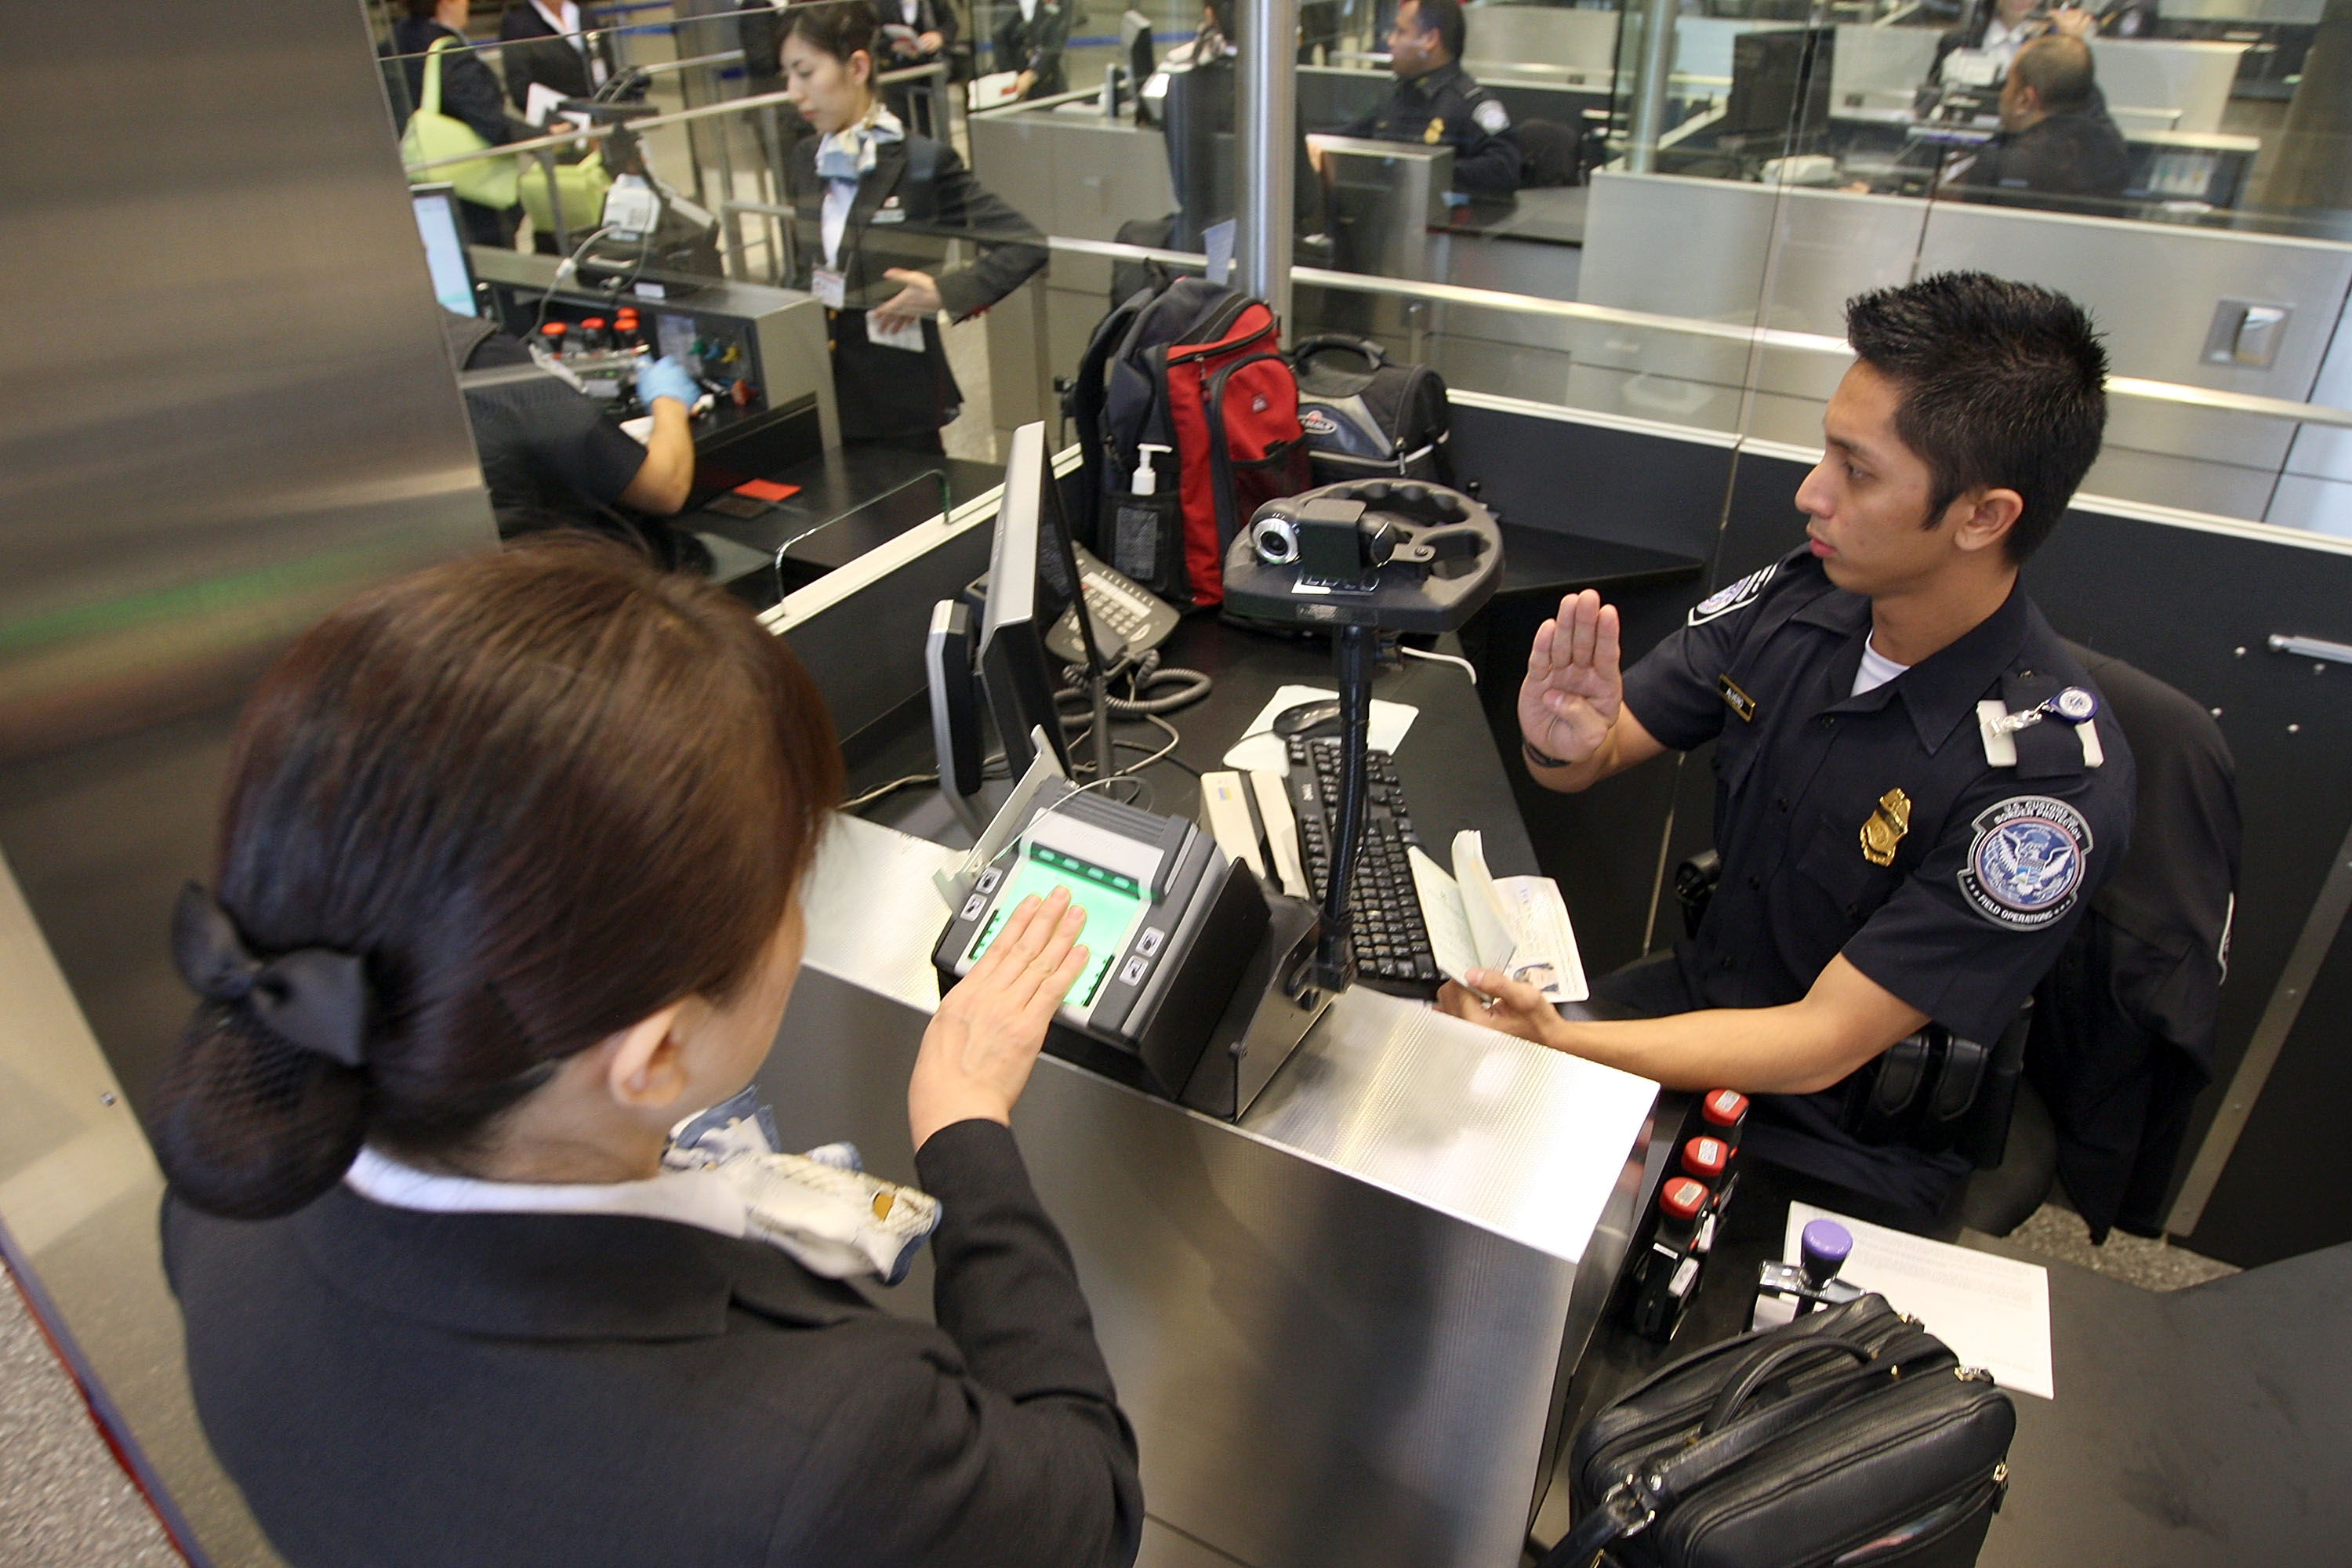 A US federal court finds suspicionless searches of phones at the border is illegal